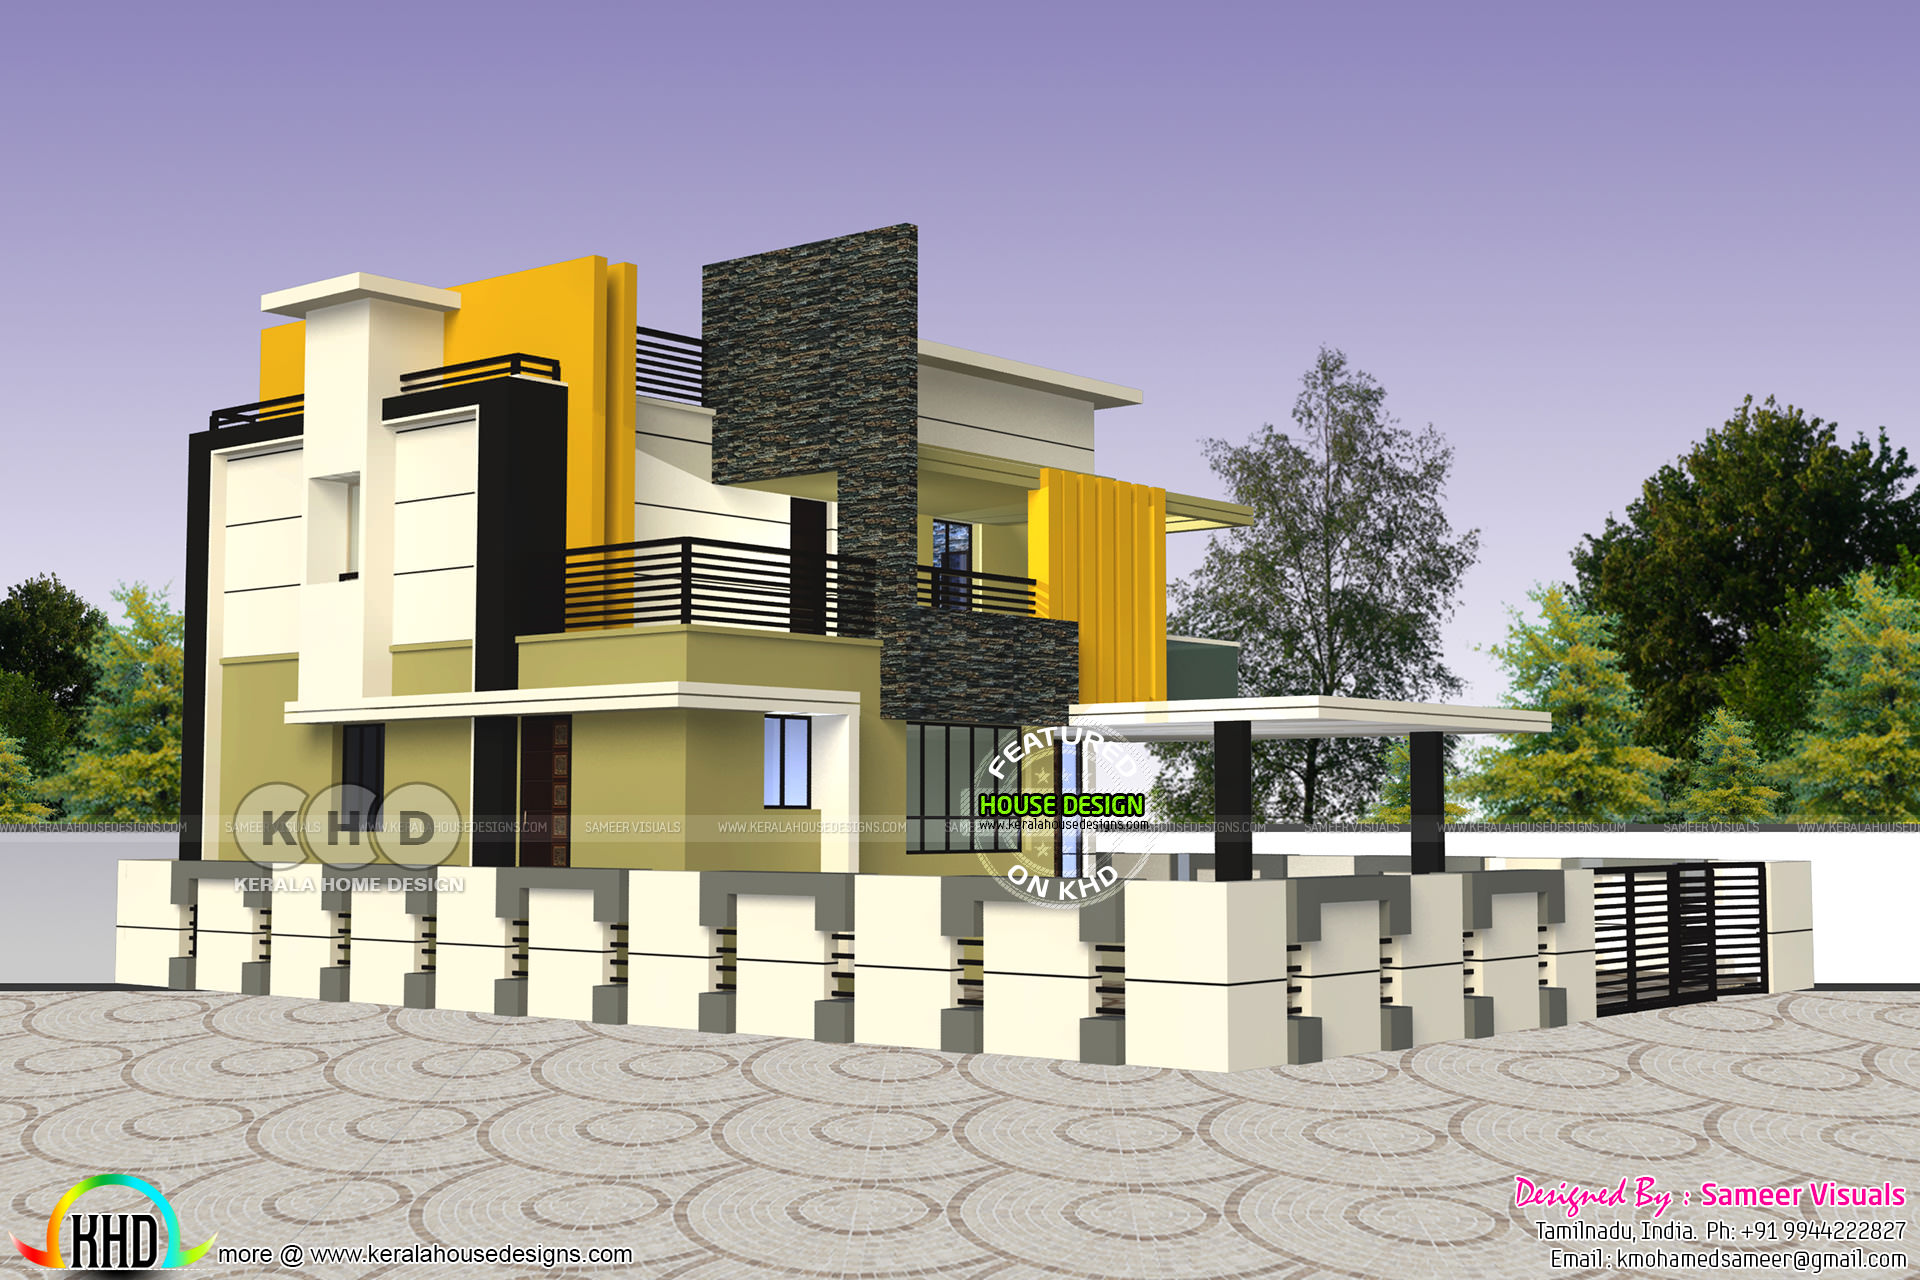 Charming Design Provided By Sameer Visuals, Tamilnadu, India. House Specification  Ground Floor Area : 1980 Sq Ft First Floor Area : 1500 Sq Ft